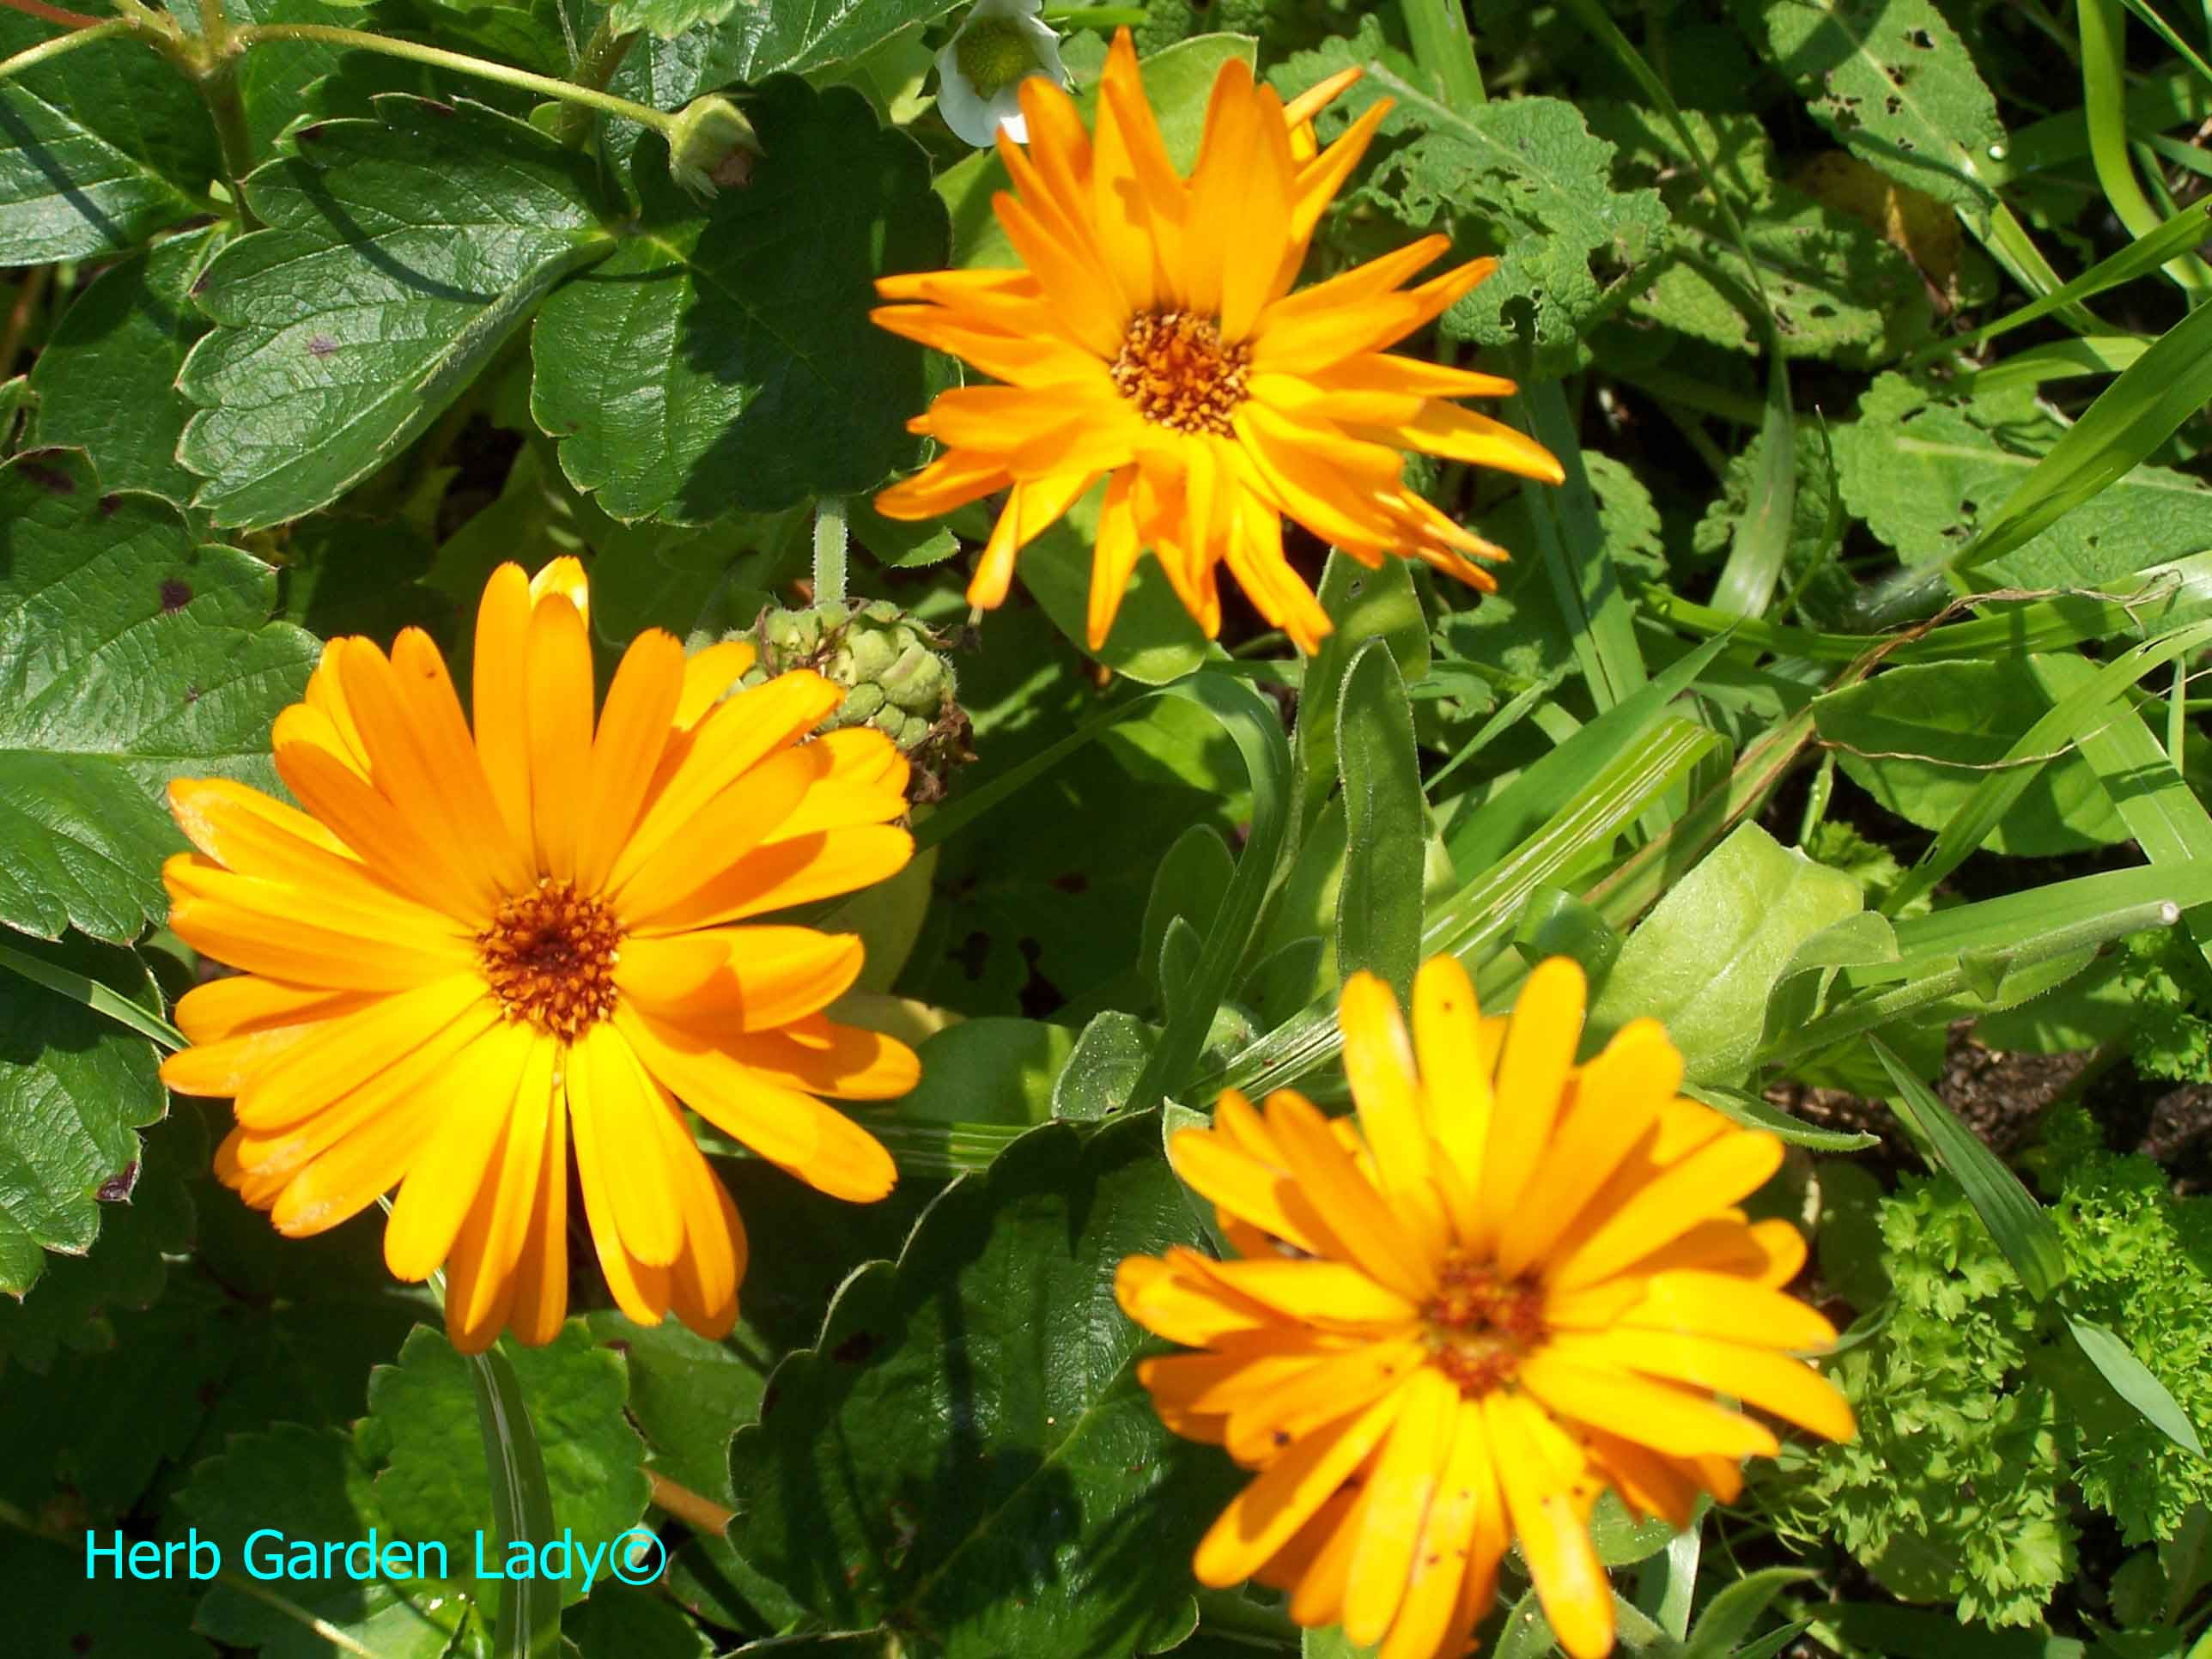 Calendula herb is invaluable in first-aid skin lotions, ointments or soaps.